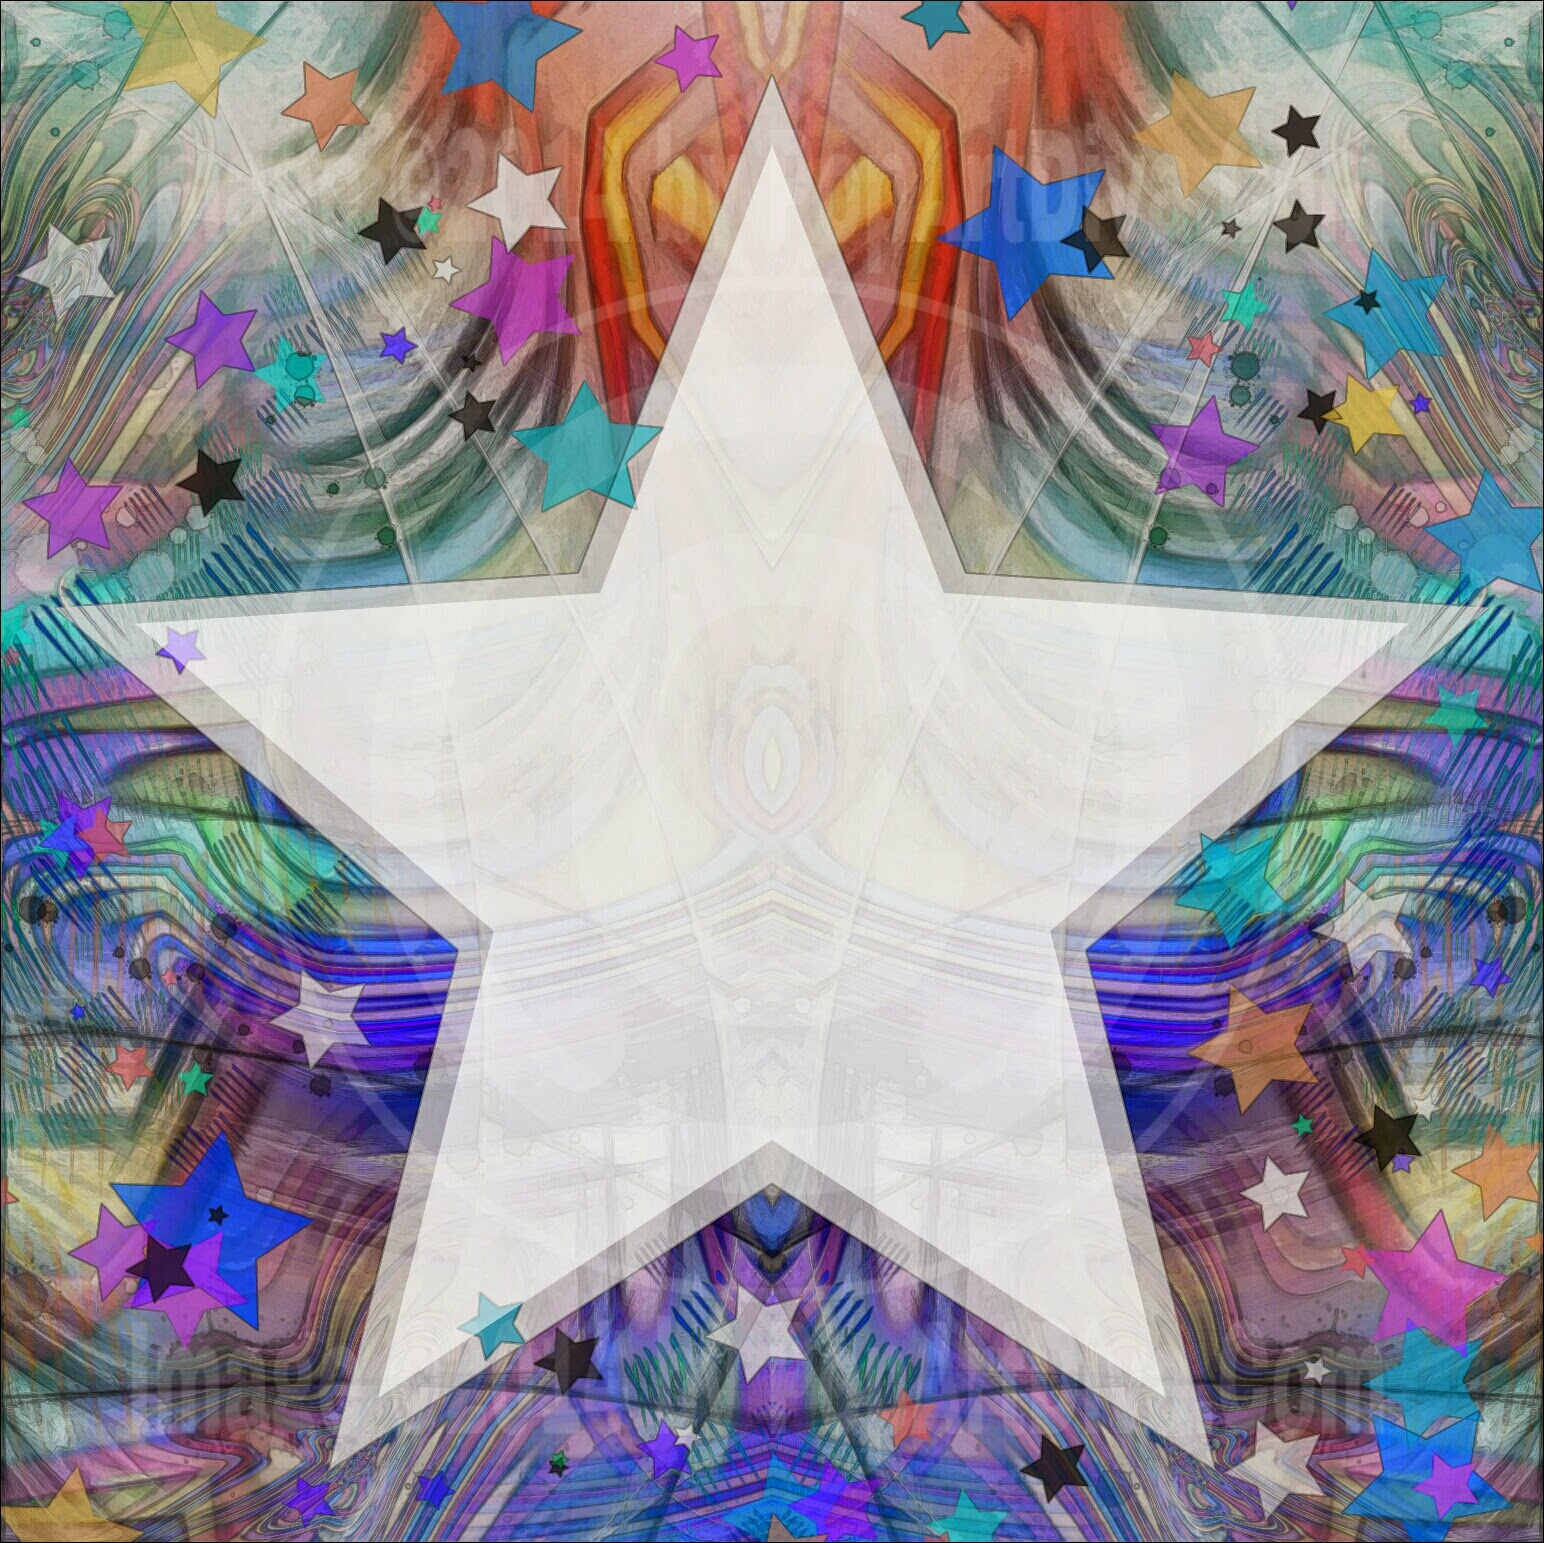 http://store.payloadz.com/details/2084849-photos-and-images-clip-art-squished-star-web-graphic-frame-border.html